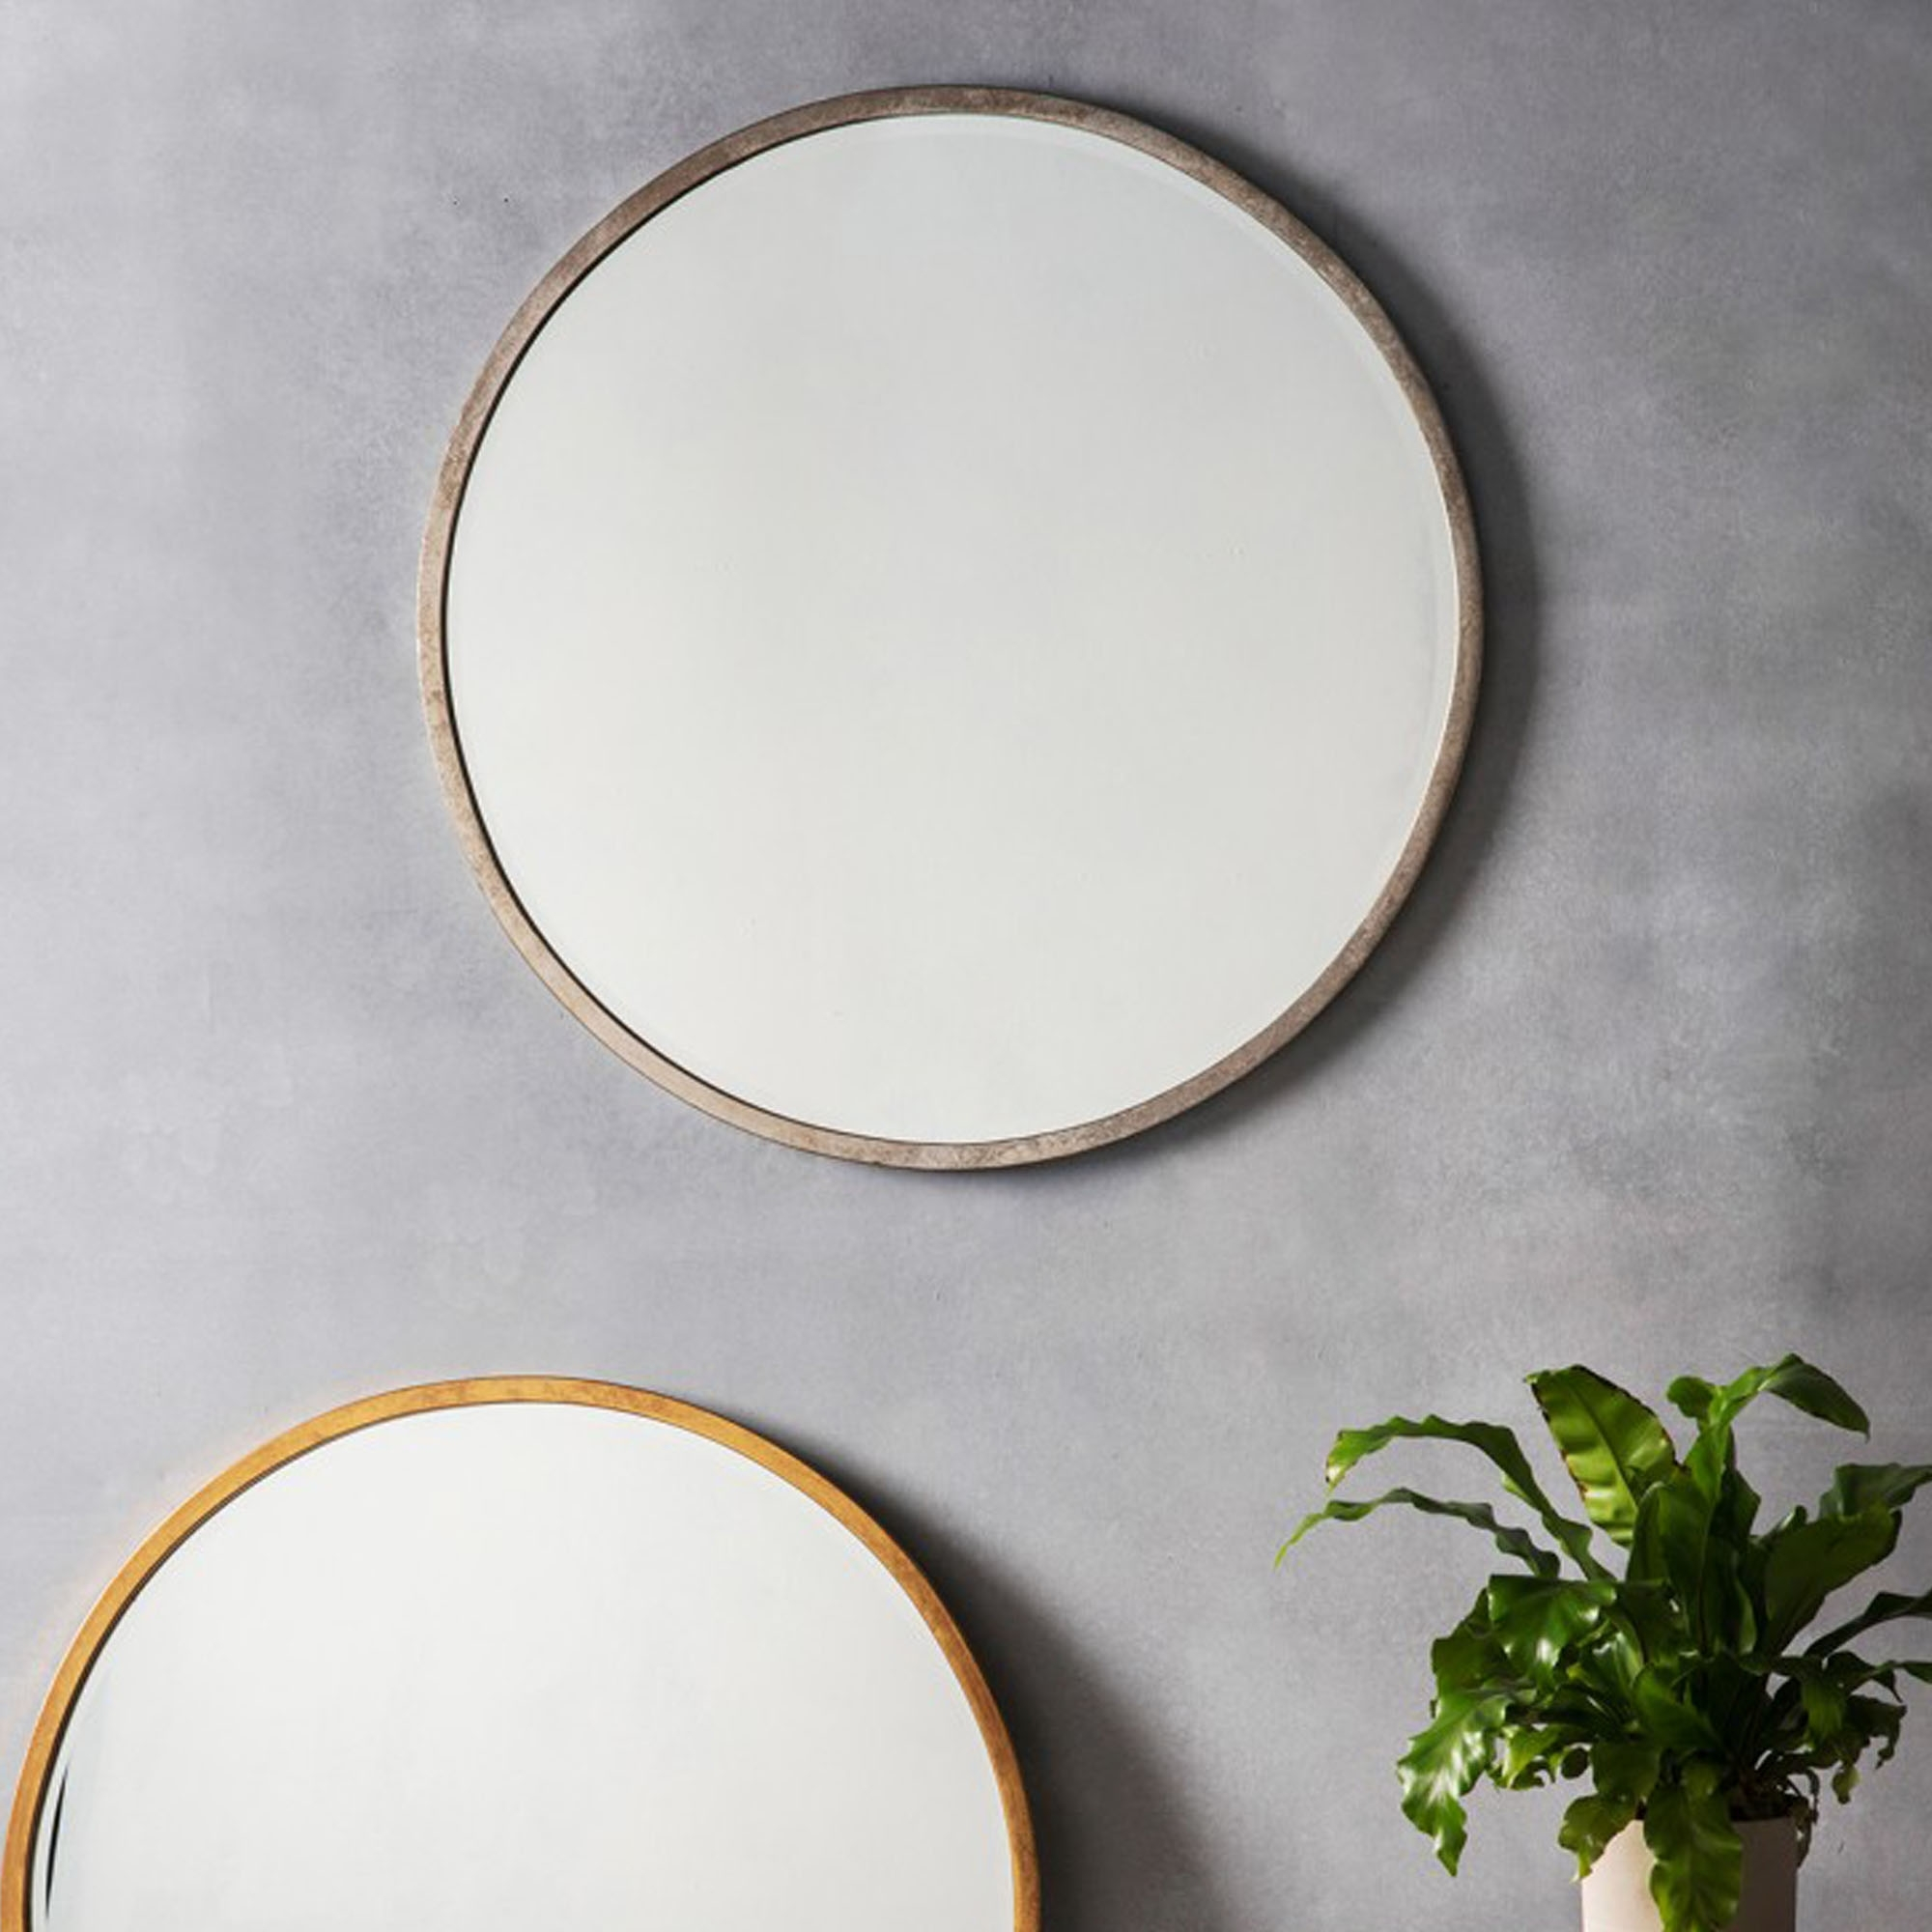 Fun Higgins Silver Round Wall Mirror Higgins Silver Round Wall Mirror Round Wall Mirror Bathroom Round Wall Mirror Chain houzz-03 Round Wall Mirror